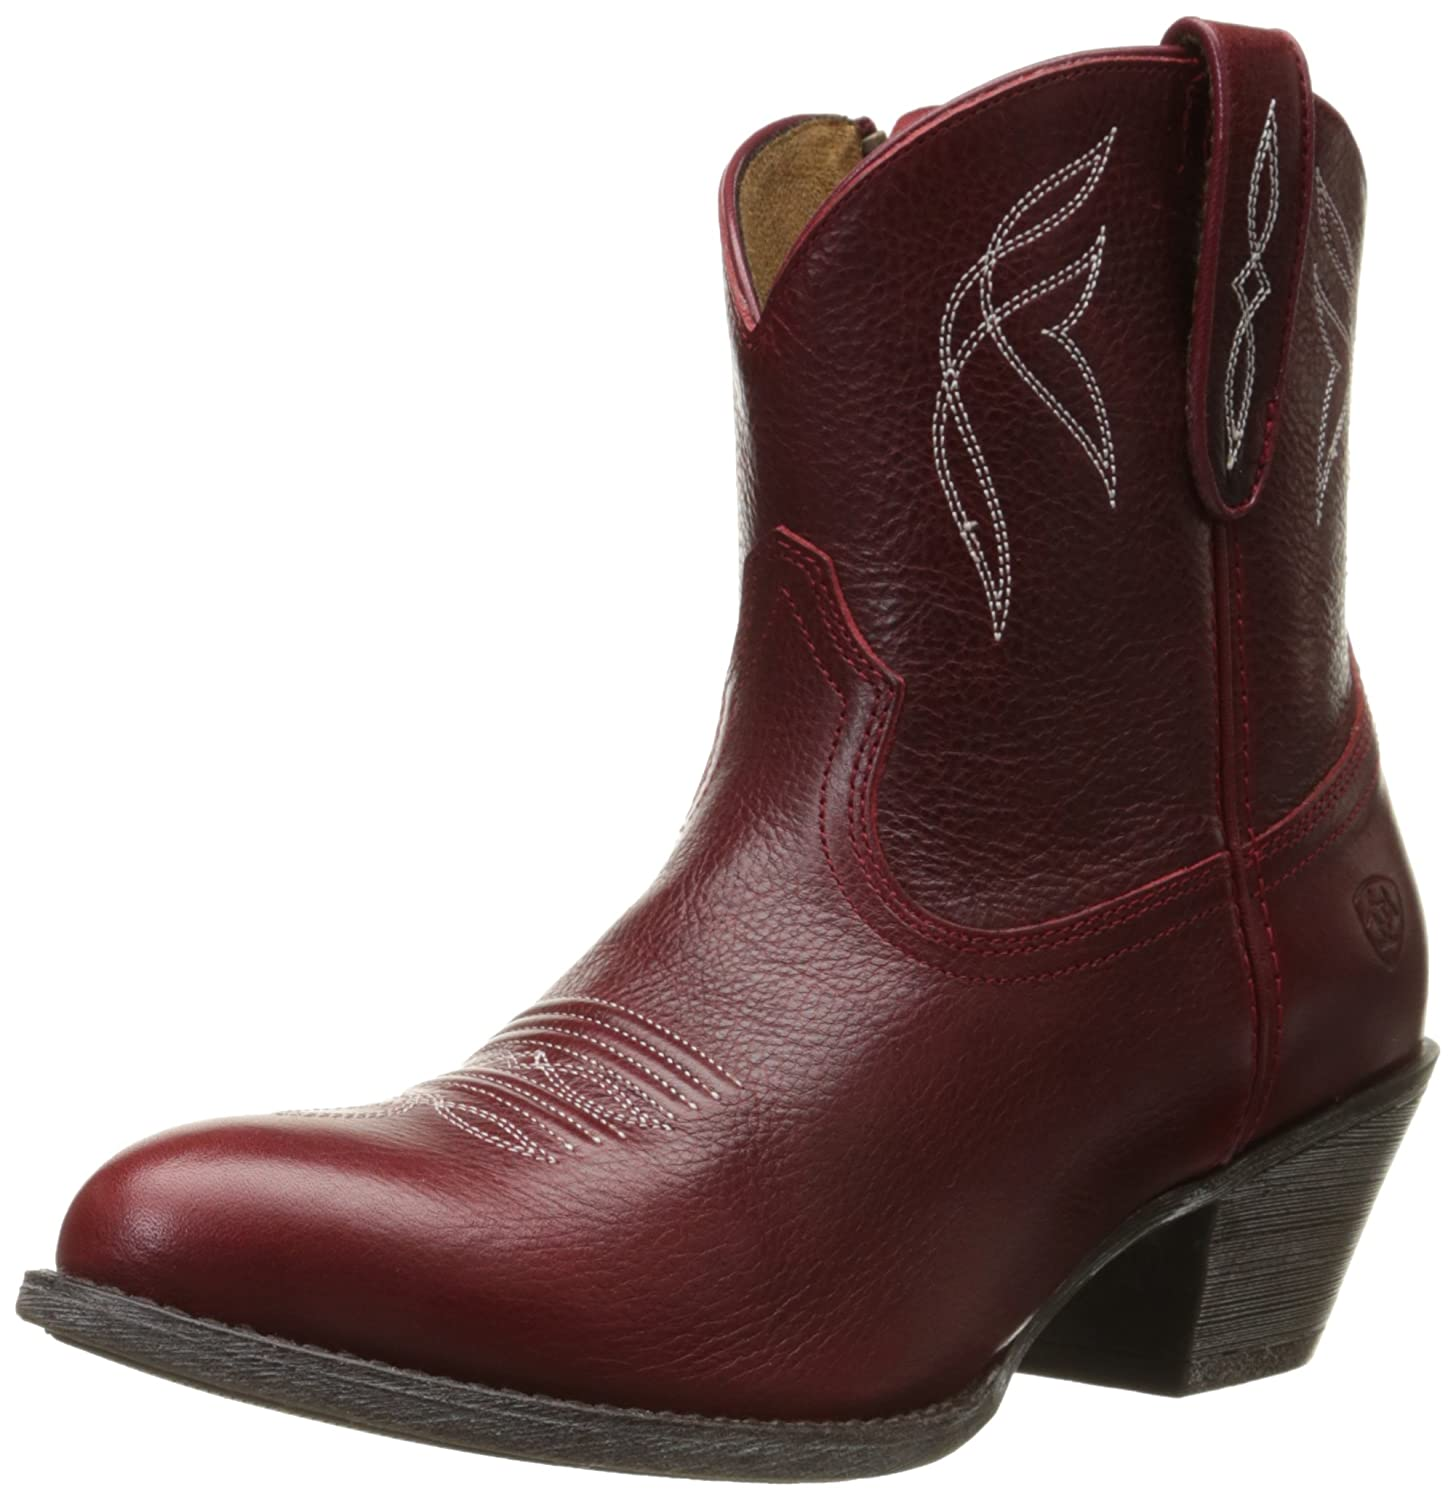 Ariat Women's Darlin Work Boot B013WSD2H4 11 B(M) US|Rosy Red